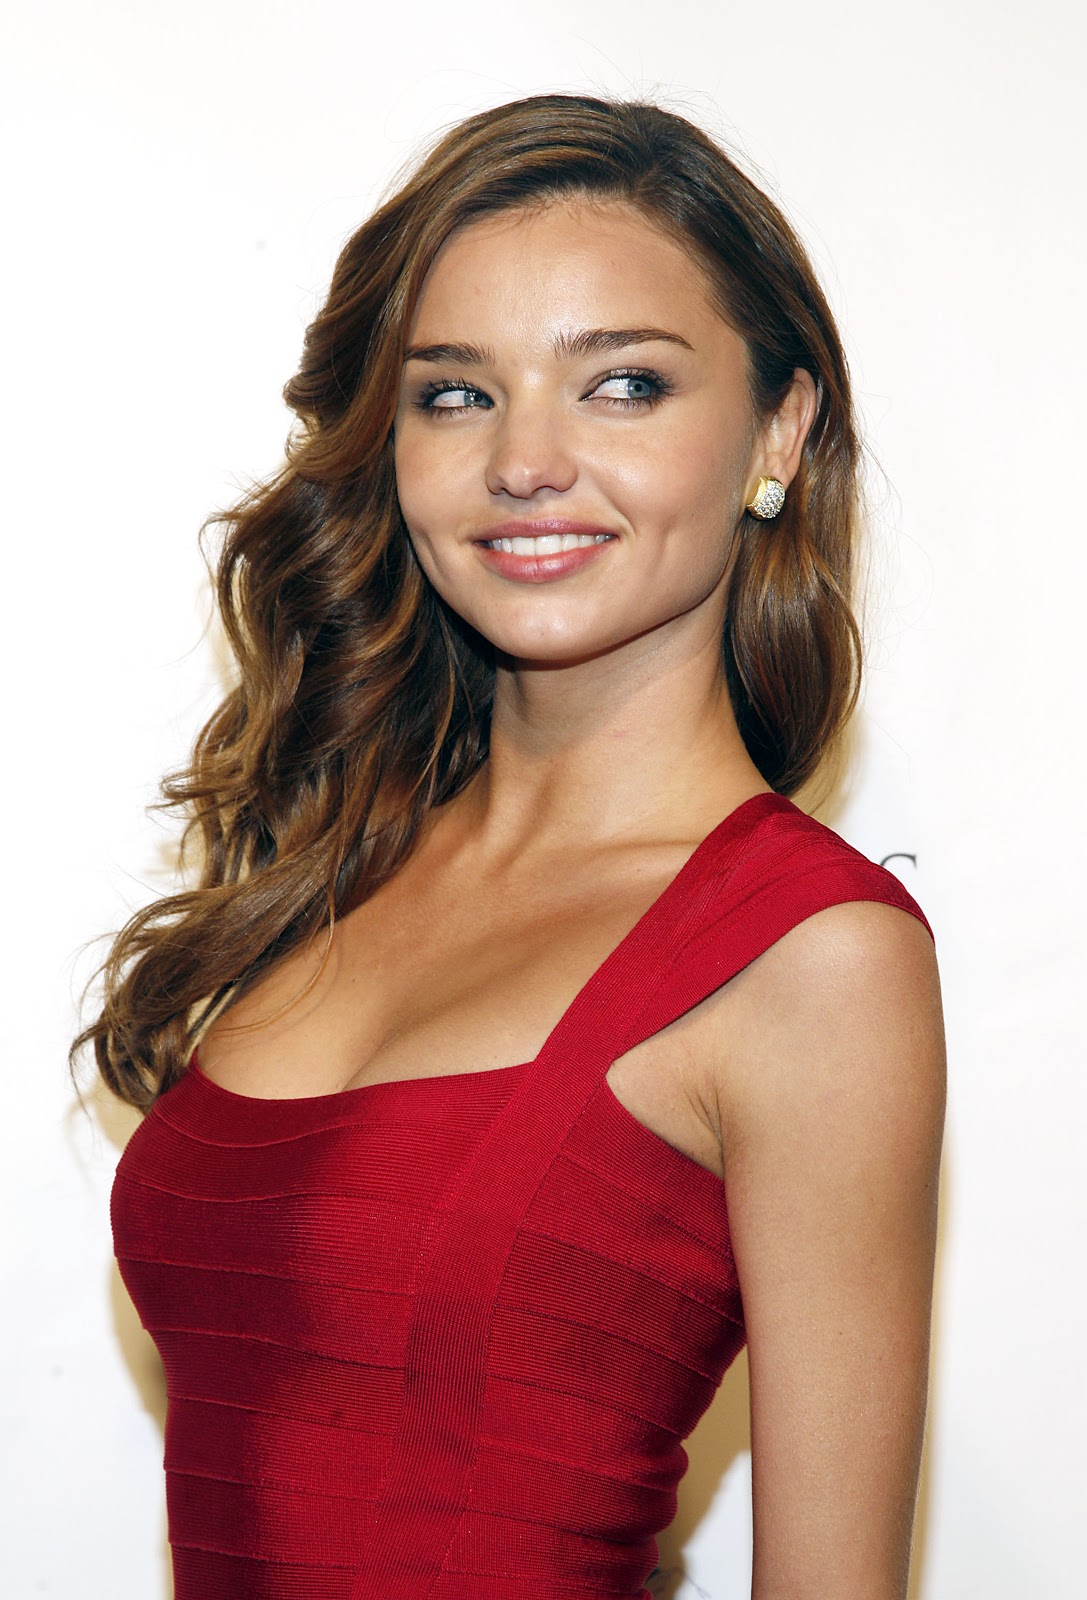 Miranda Kerr S Best Style Looks Ever: HD Wallpapers (High Definition)